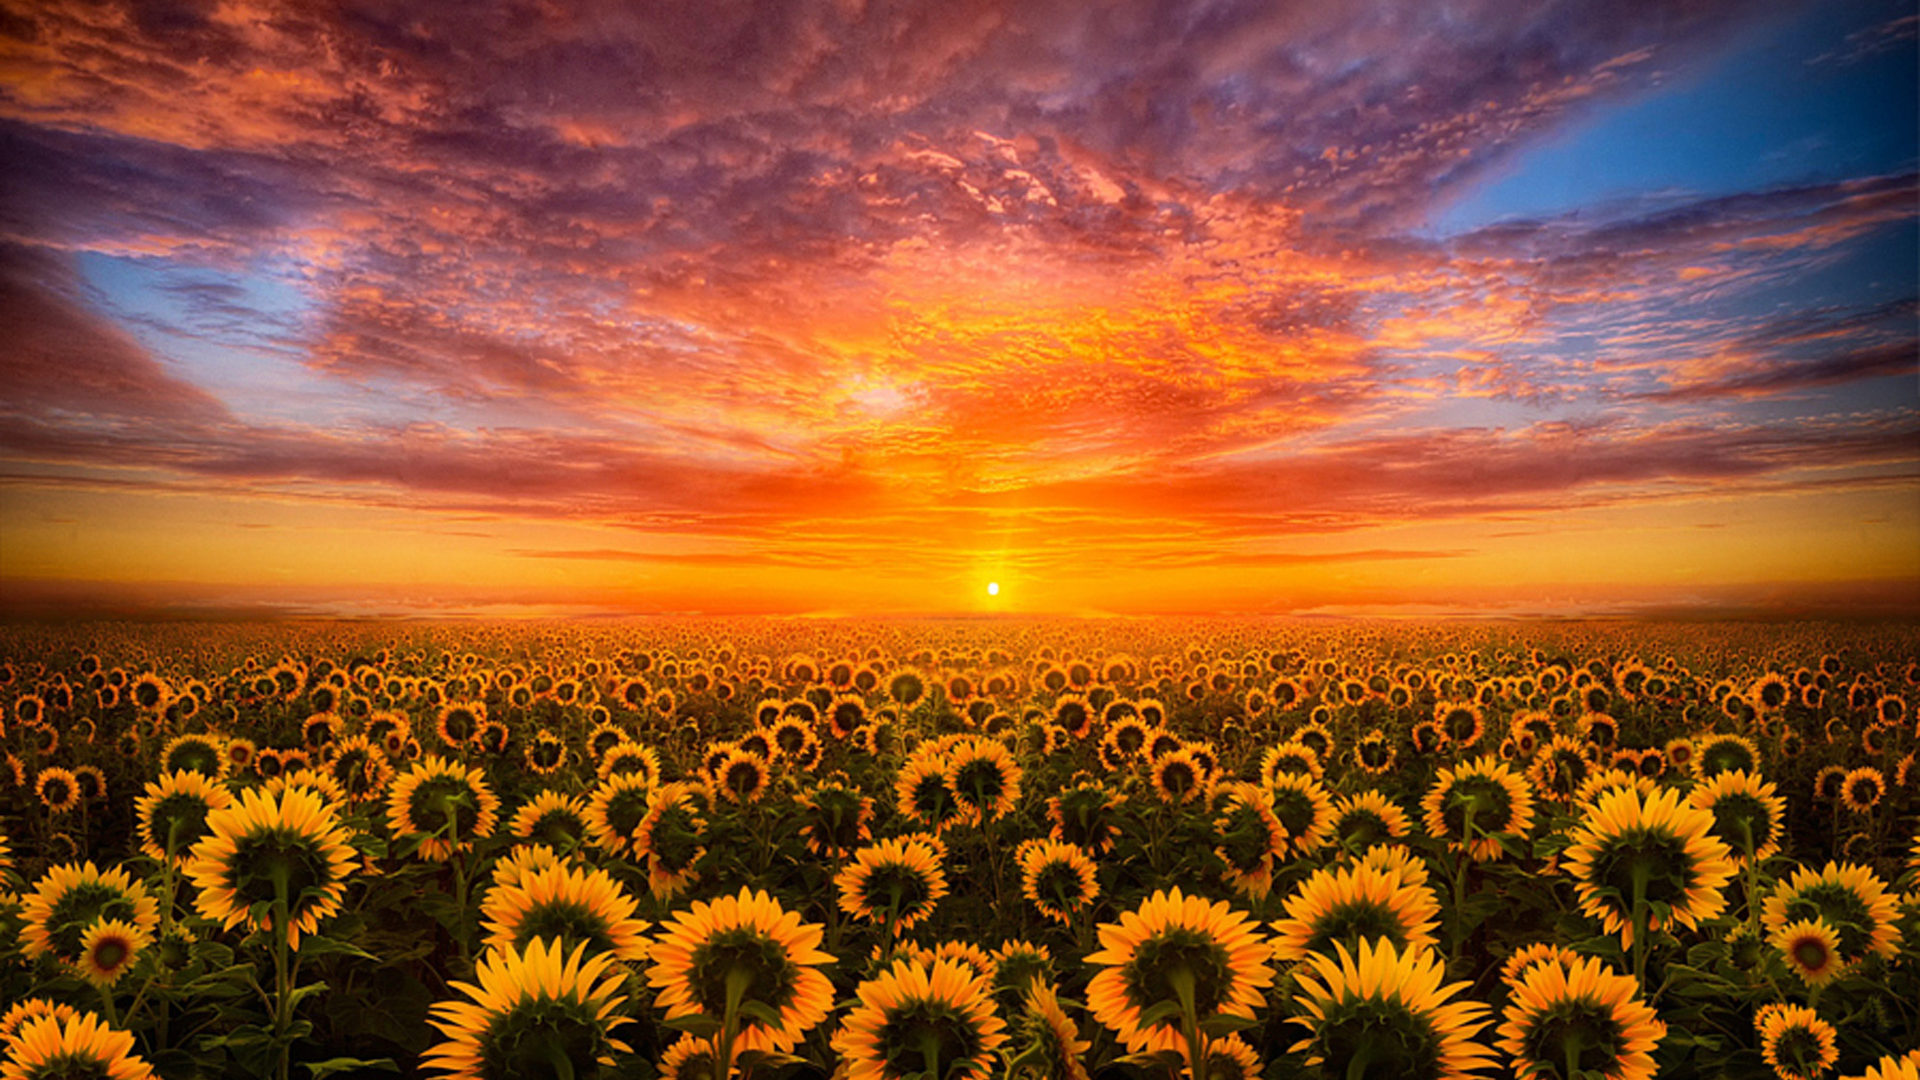 Create a unique look for your ios 14 home screen with these ideas for aesthetic backgrounds, icons, and phone wallpaper. Sunset Red Sky Cloud Field With Sunflower Hd Desktop